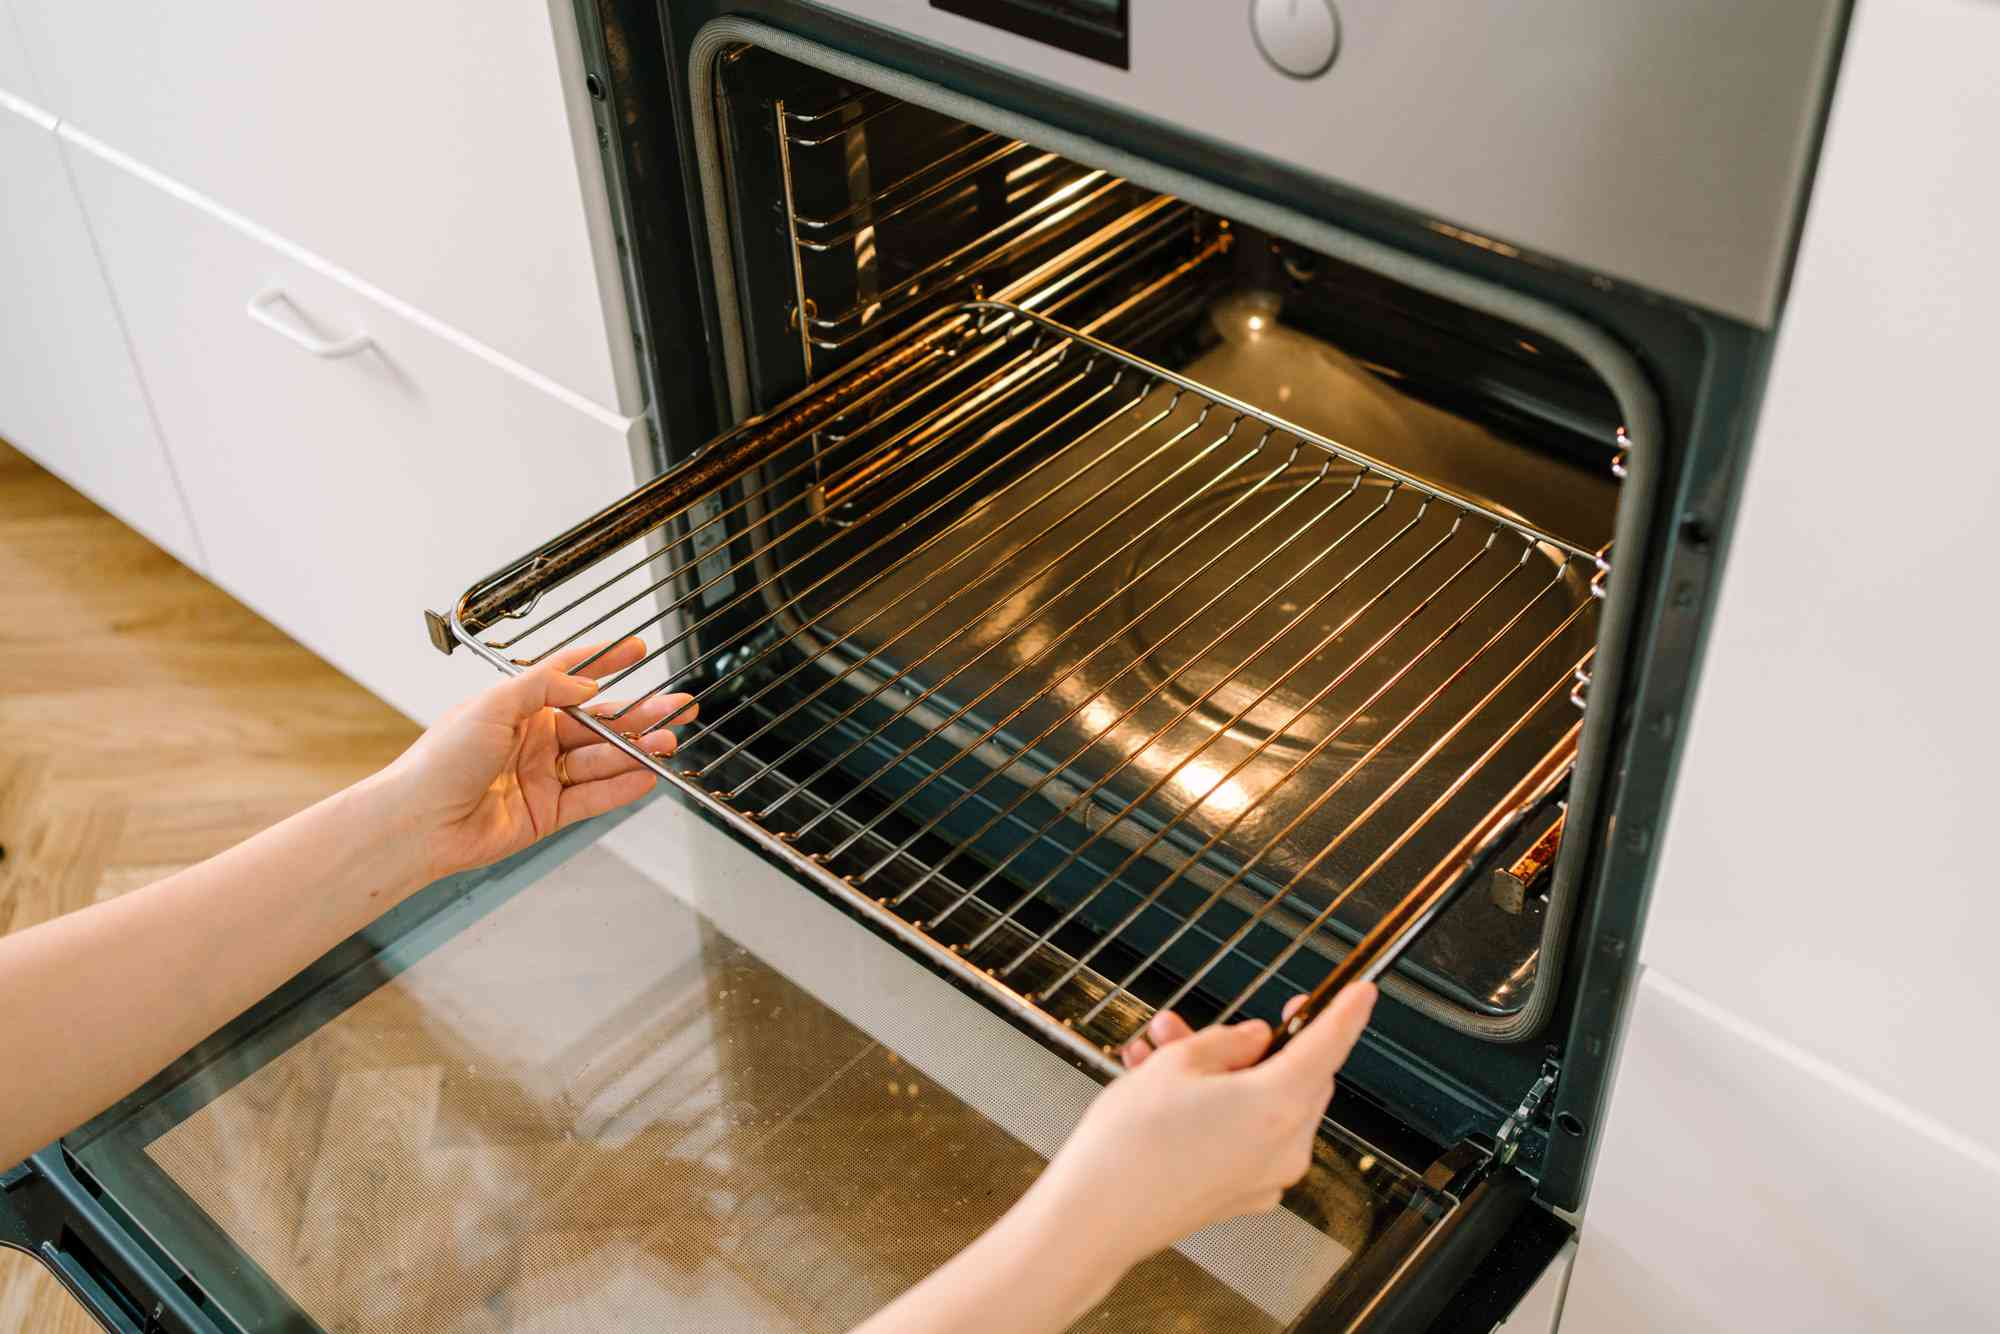 person removing the oven rack